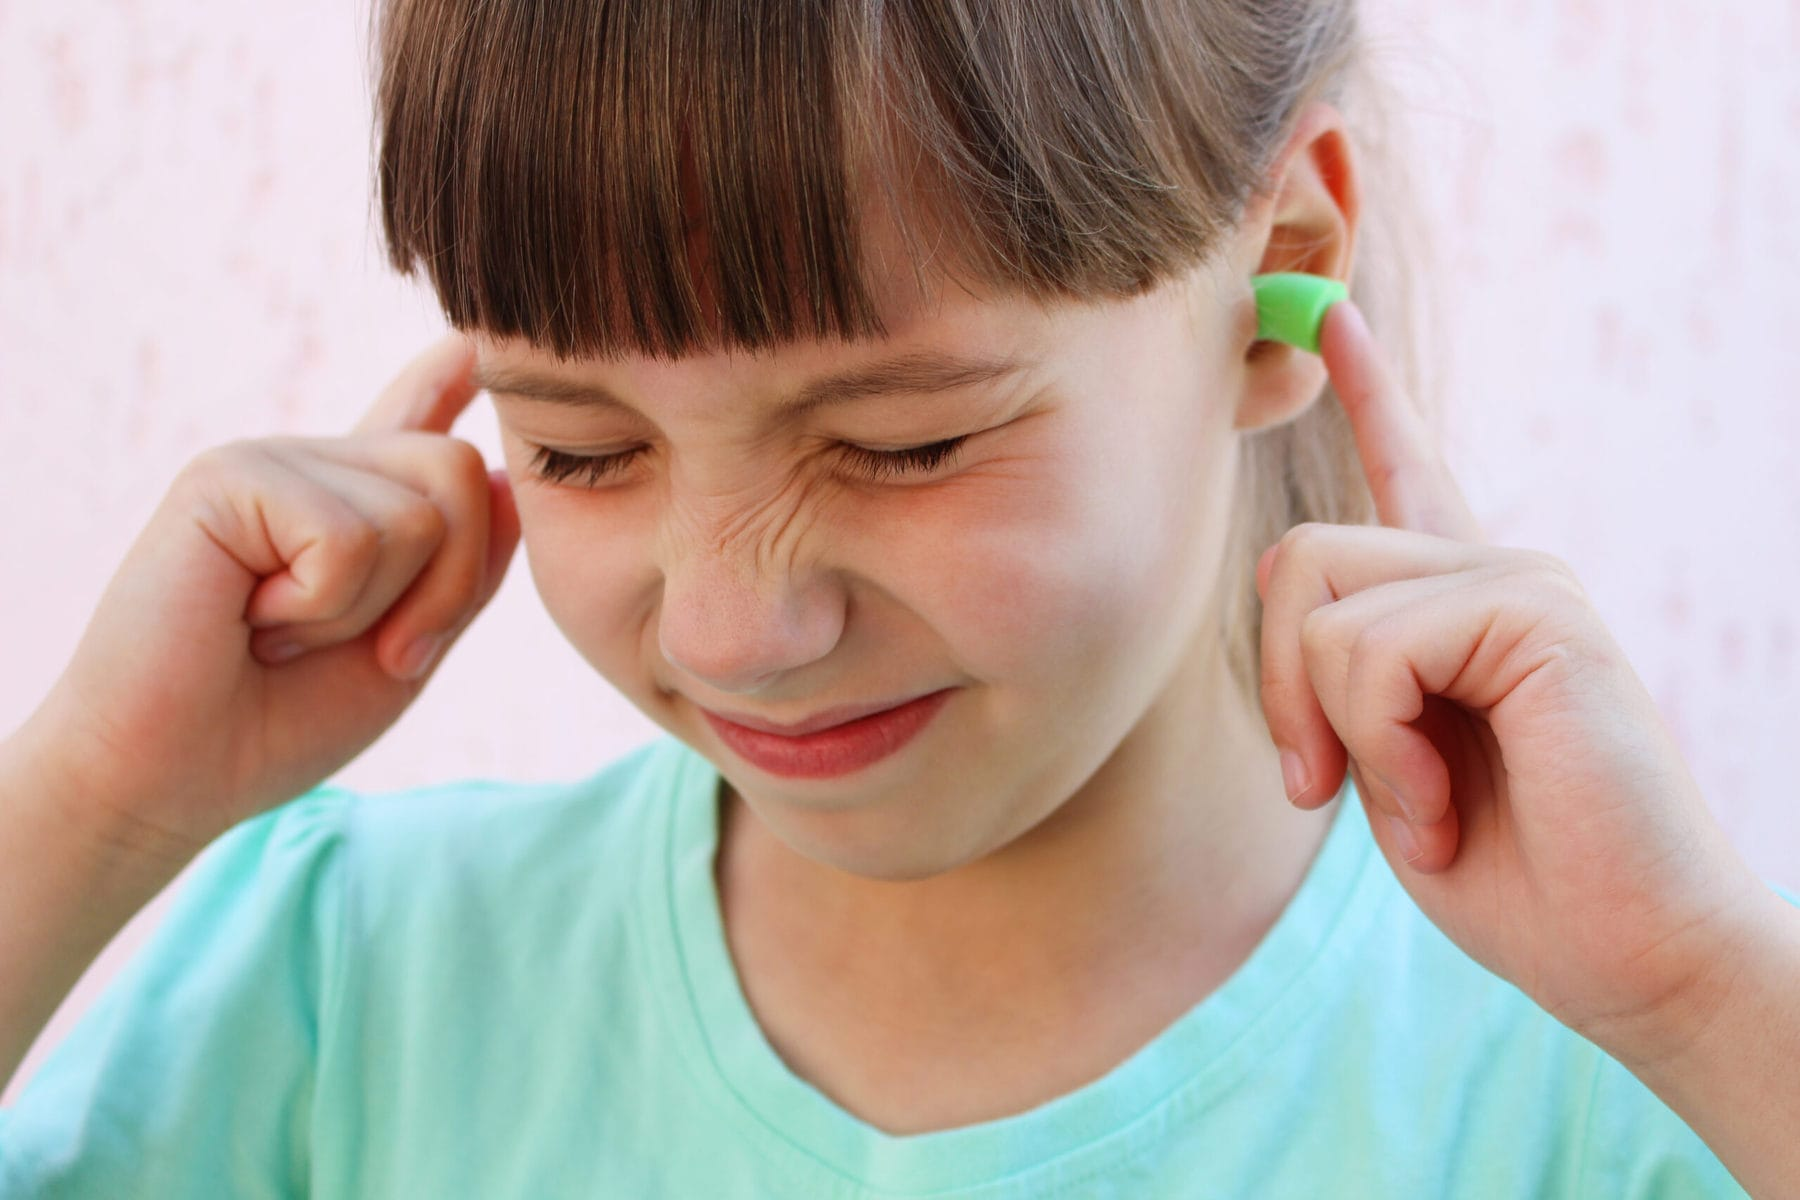 Girl with ear plugs to protect against sensory overload and noise.